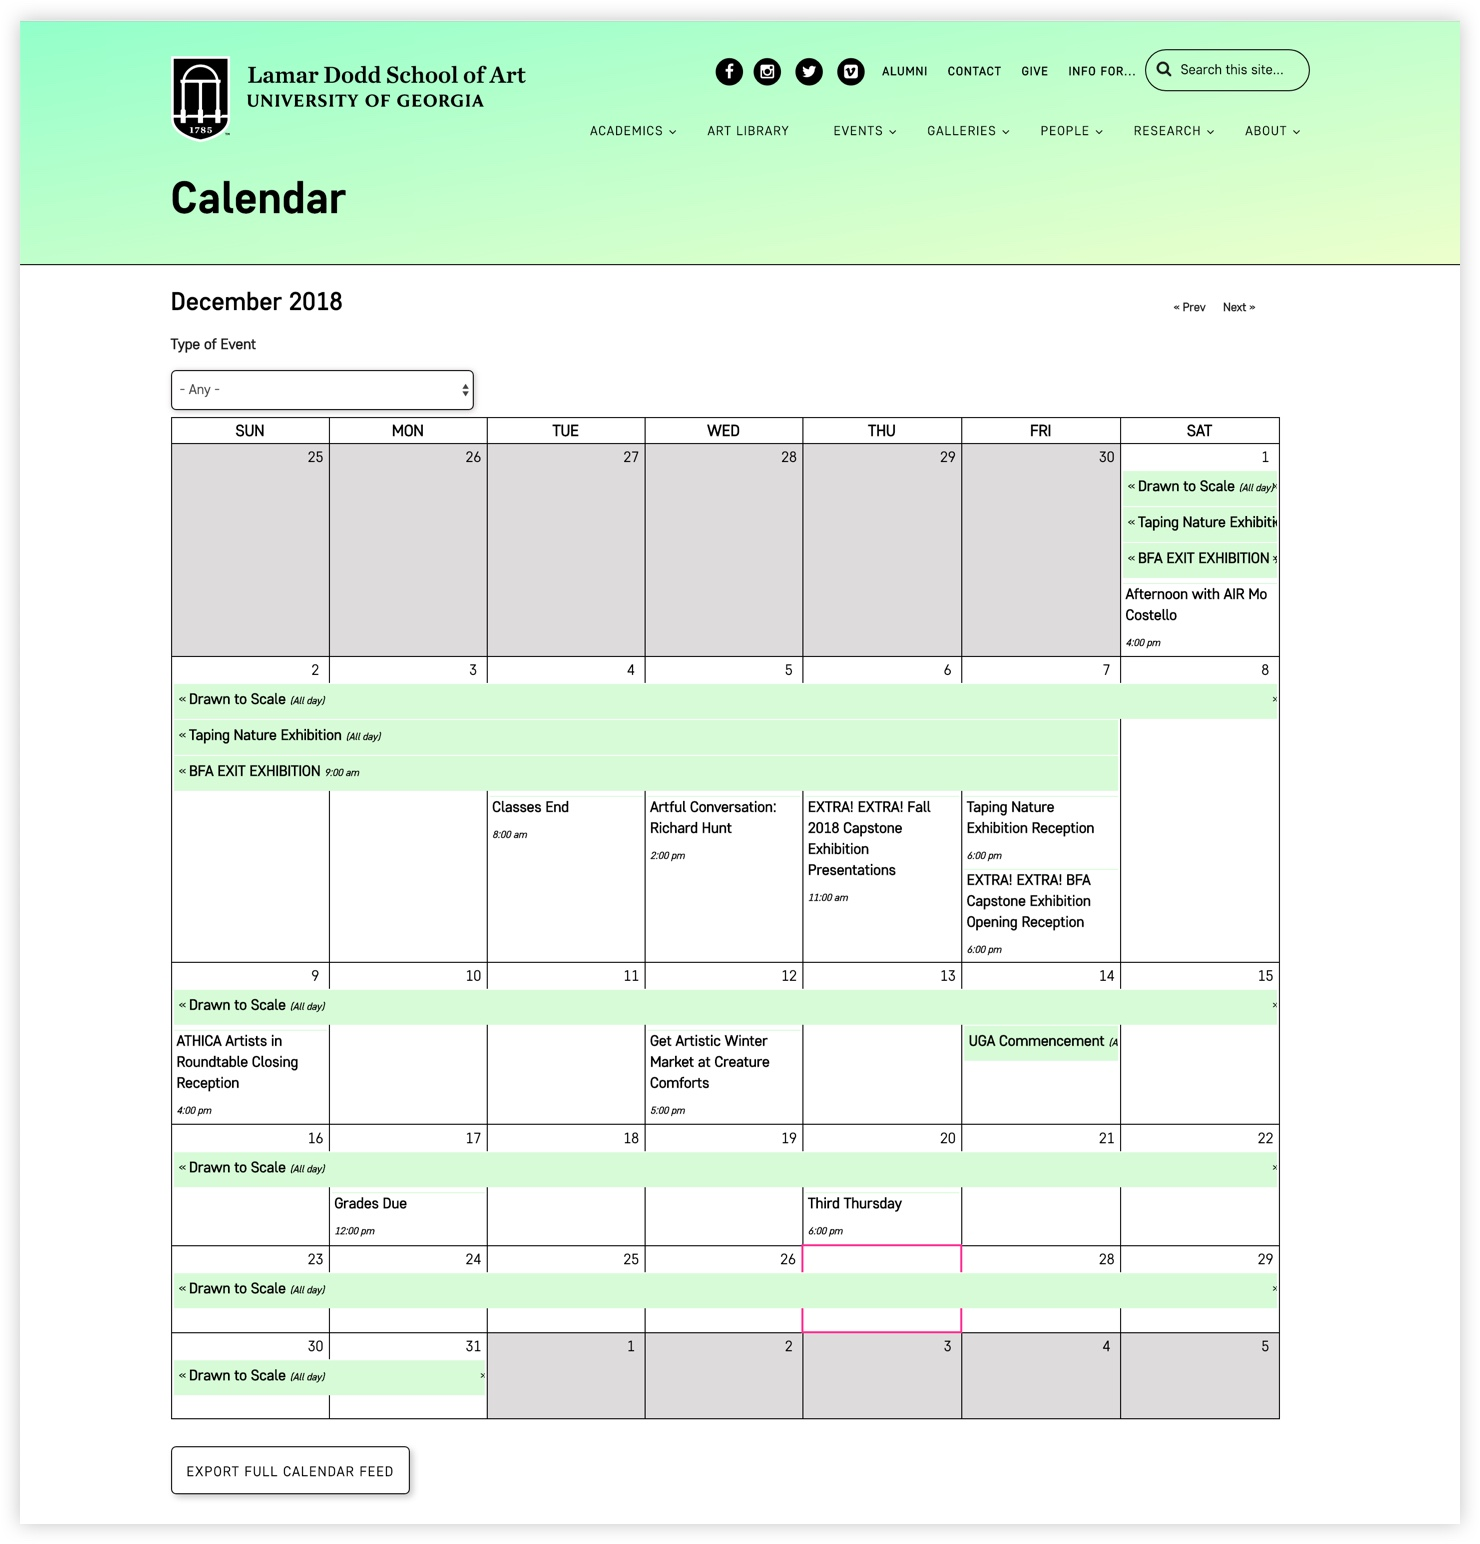 Lamar Dodd School of Art Calendar